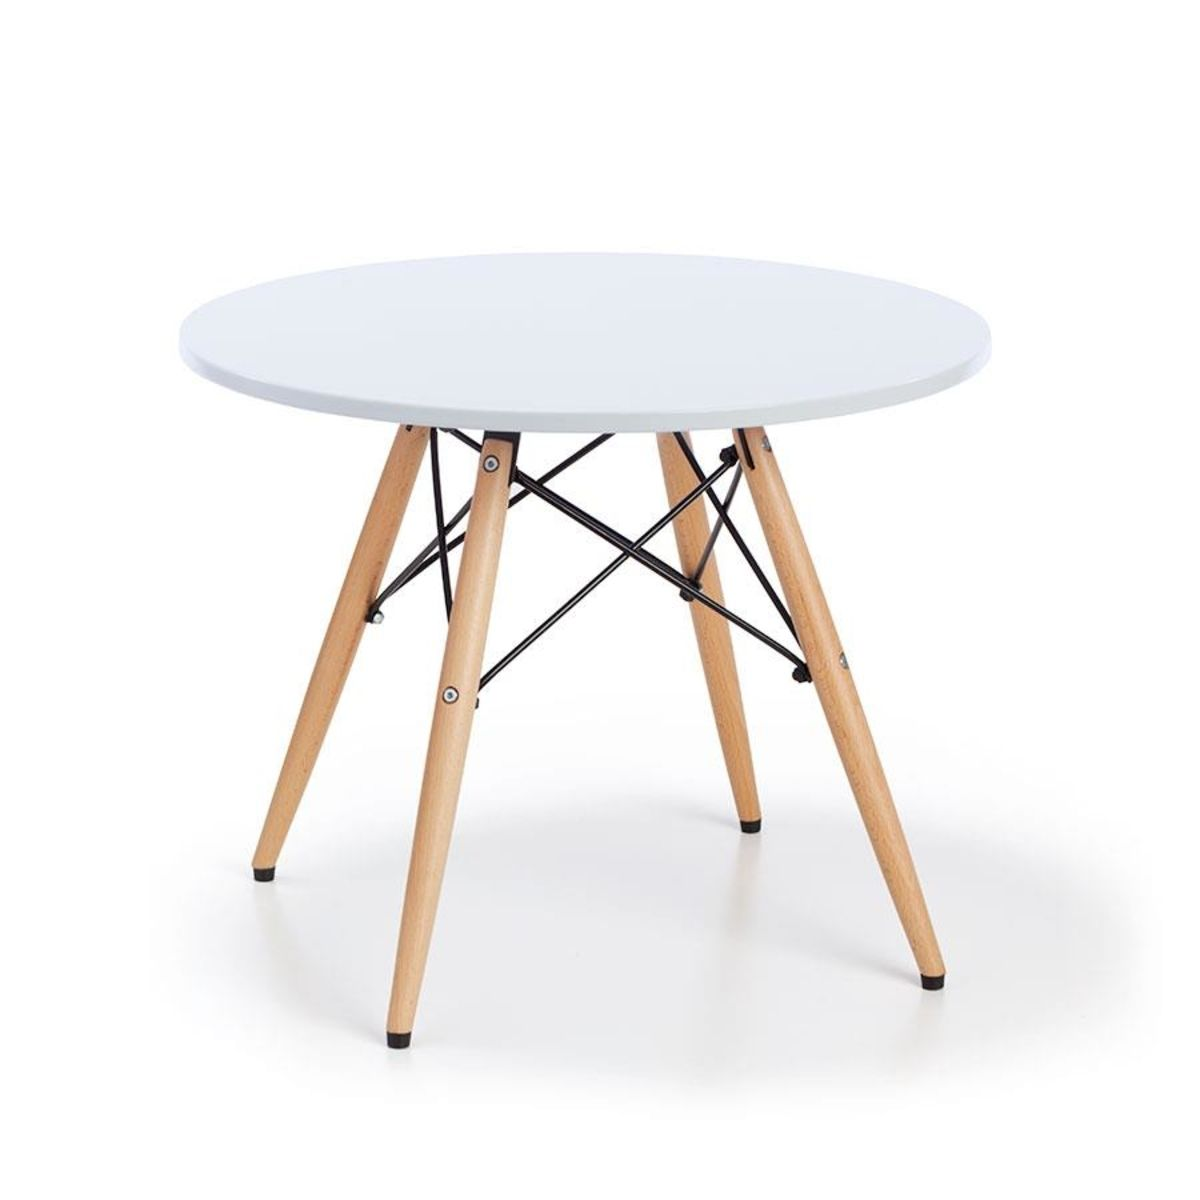 Folding Card Table And Chairs Kmart | http://brutabolin.com | Pinterest